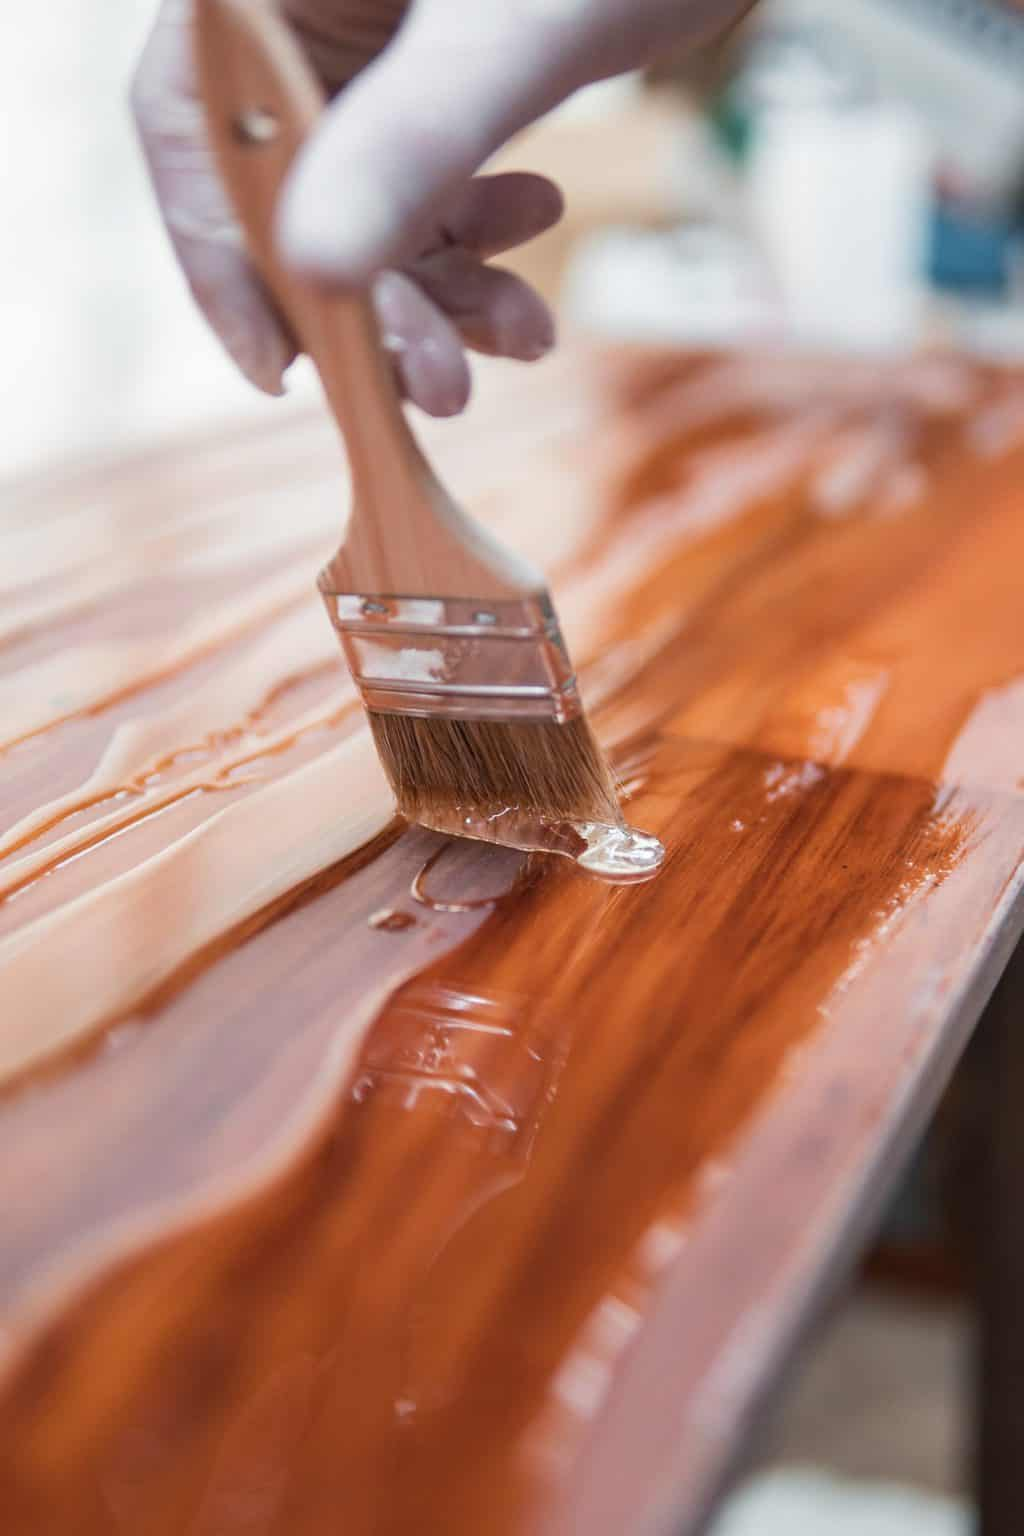 These 3 awesome tips for a successful furniture flip are going to help you stay consistent and ensure your pieces are profitable.